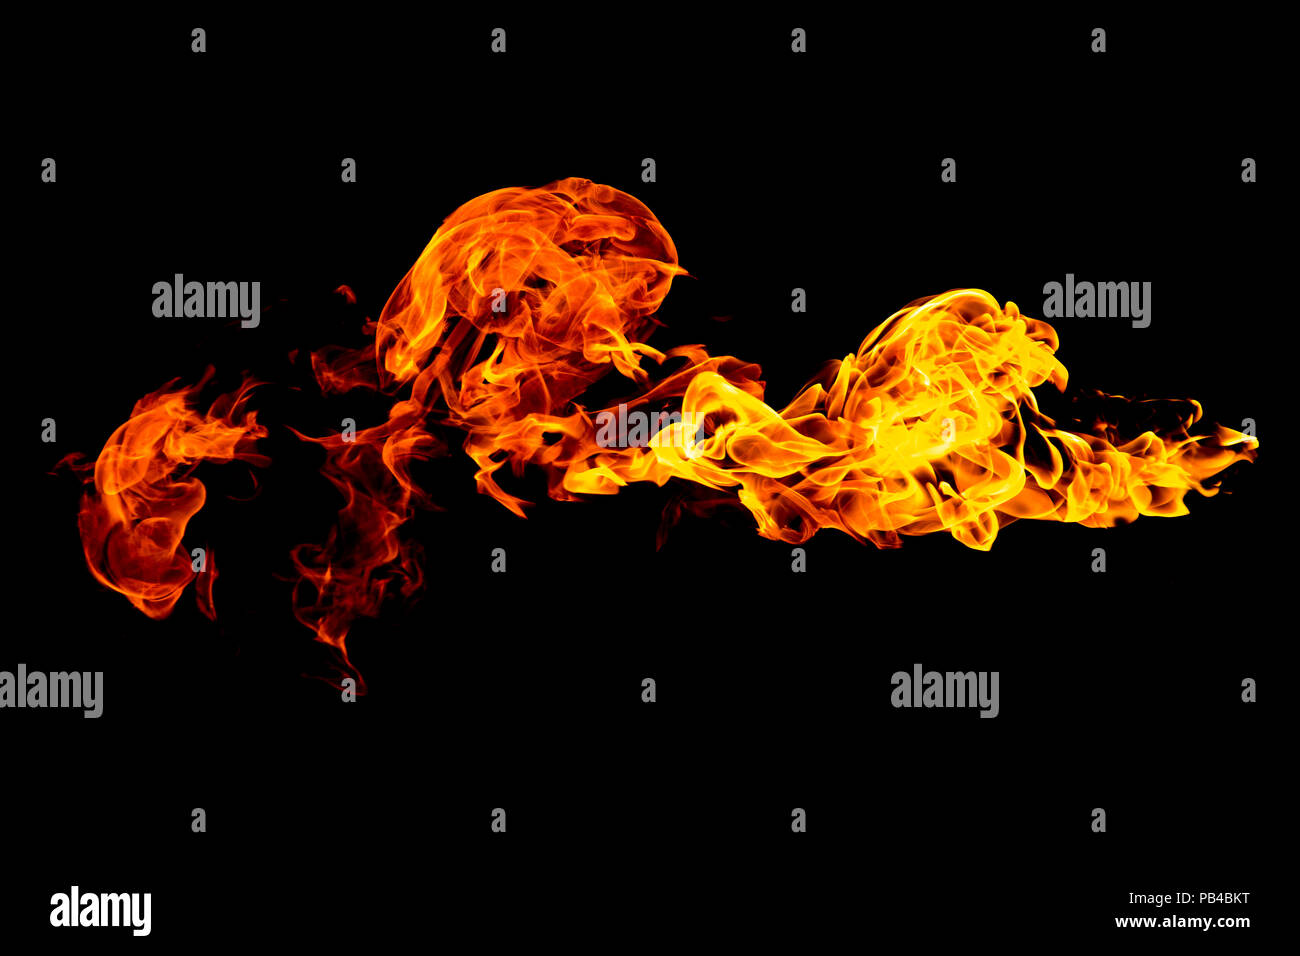 Burning flame isolated on a black background. Fire in red, orange and yellow. Horizontal orientation image. - Stock Image